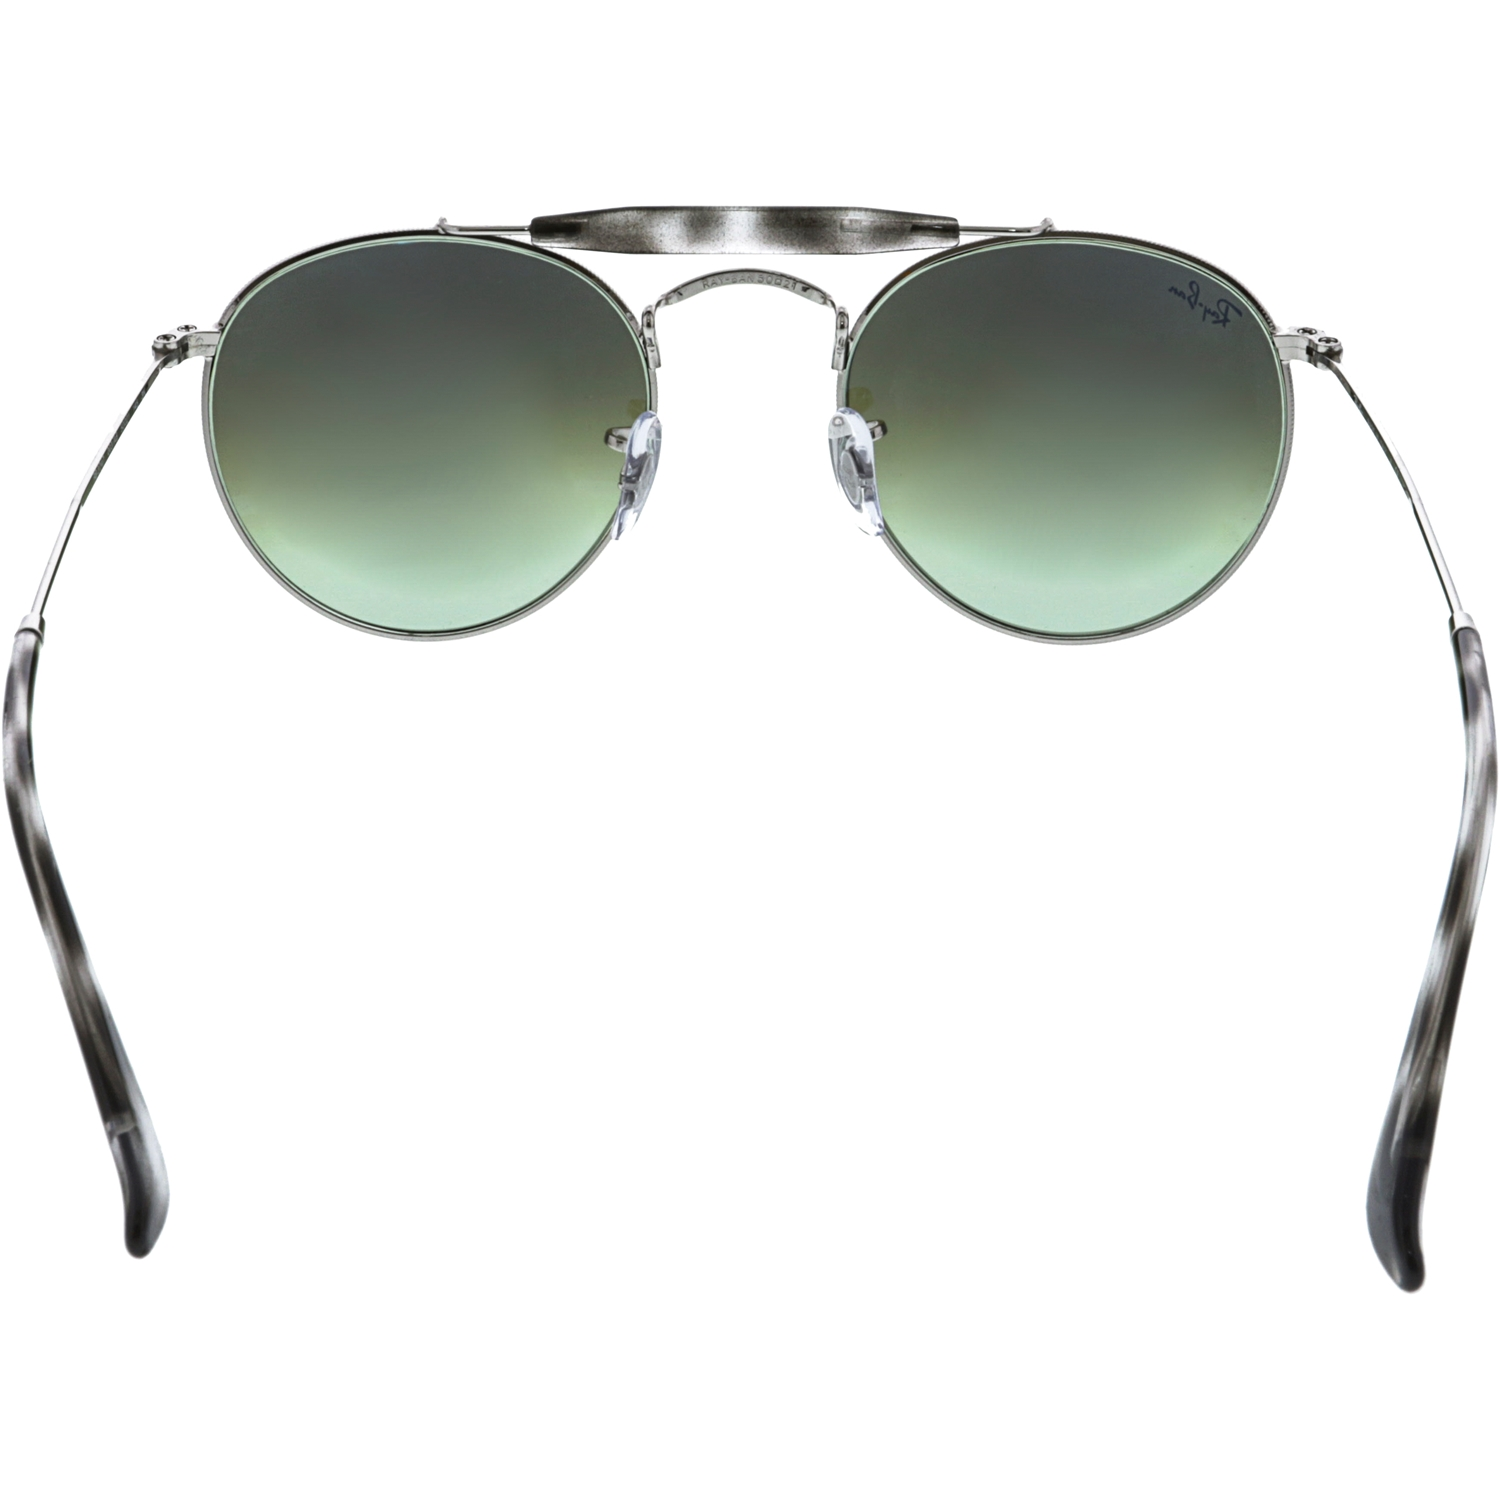 Ray-Ban Polarized RB3747-003/A6-50 Silver Round Sunglasses - image 2 of 3